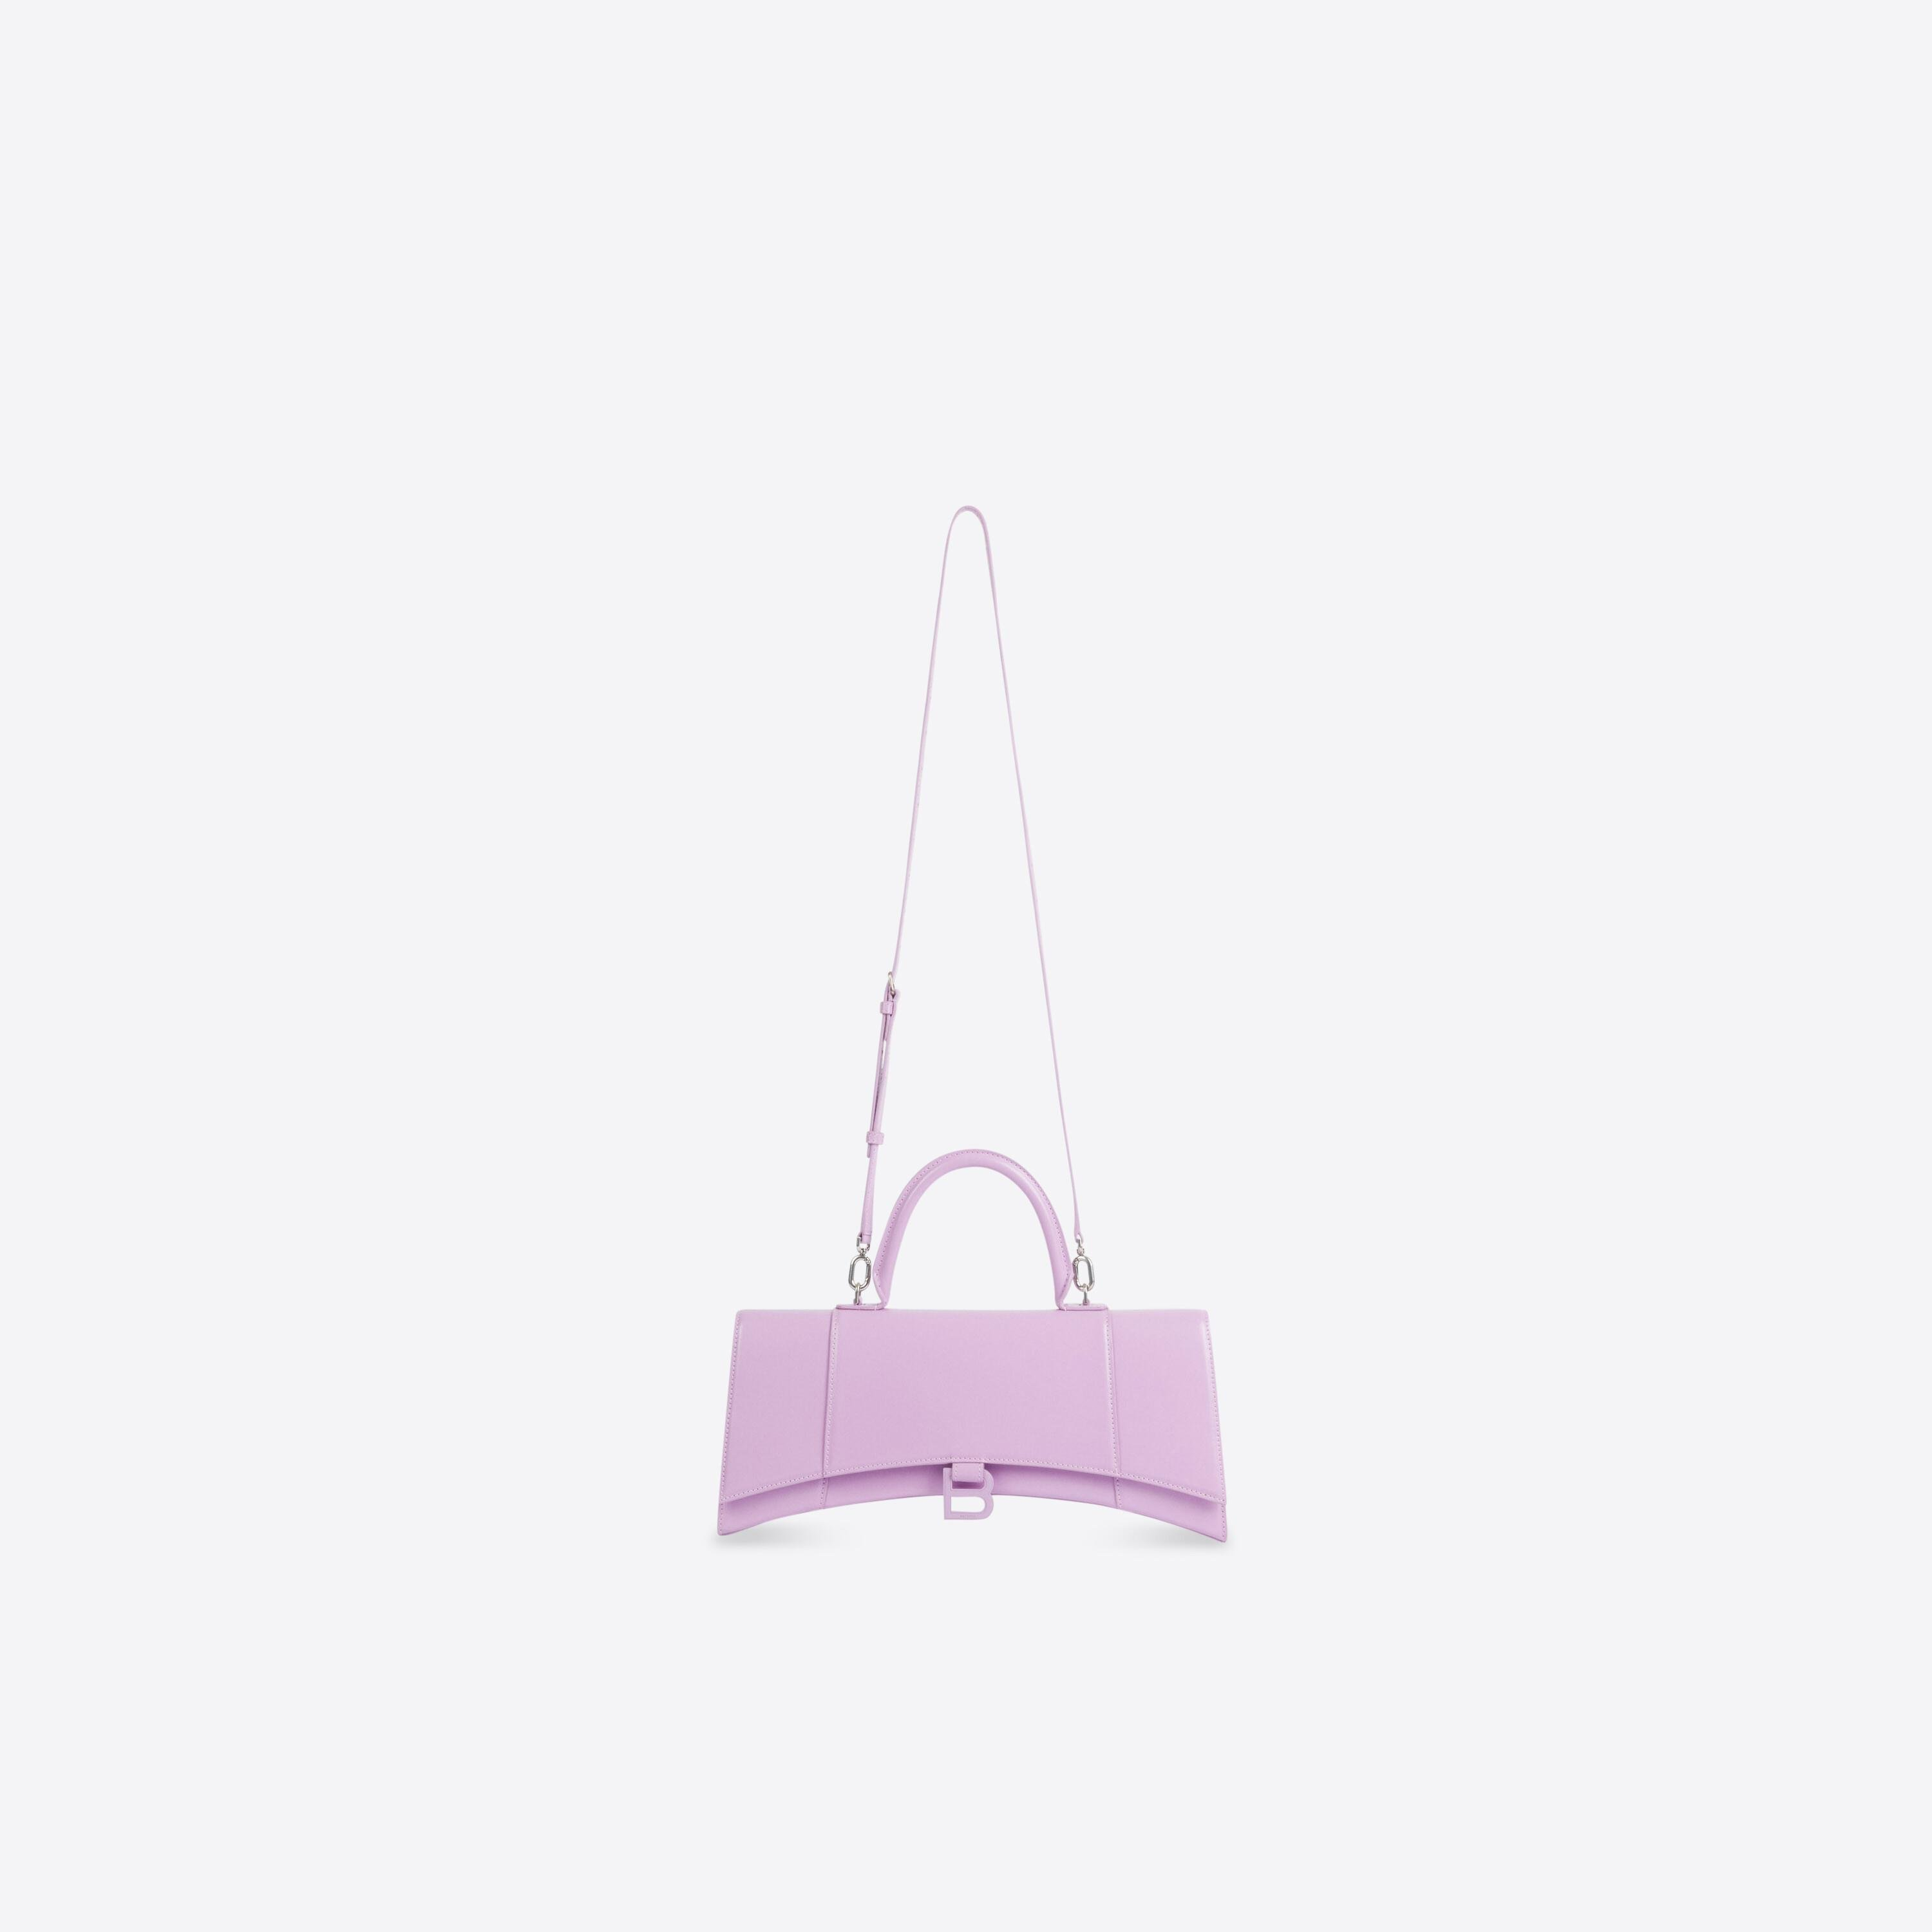 Hourglass Stretched Top Handle Bag 3